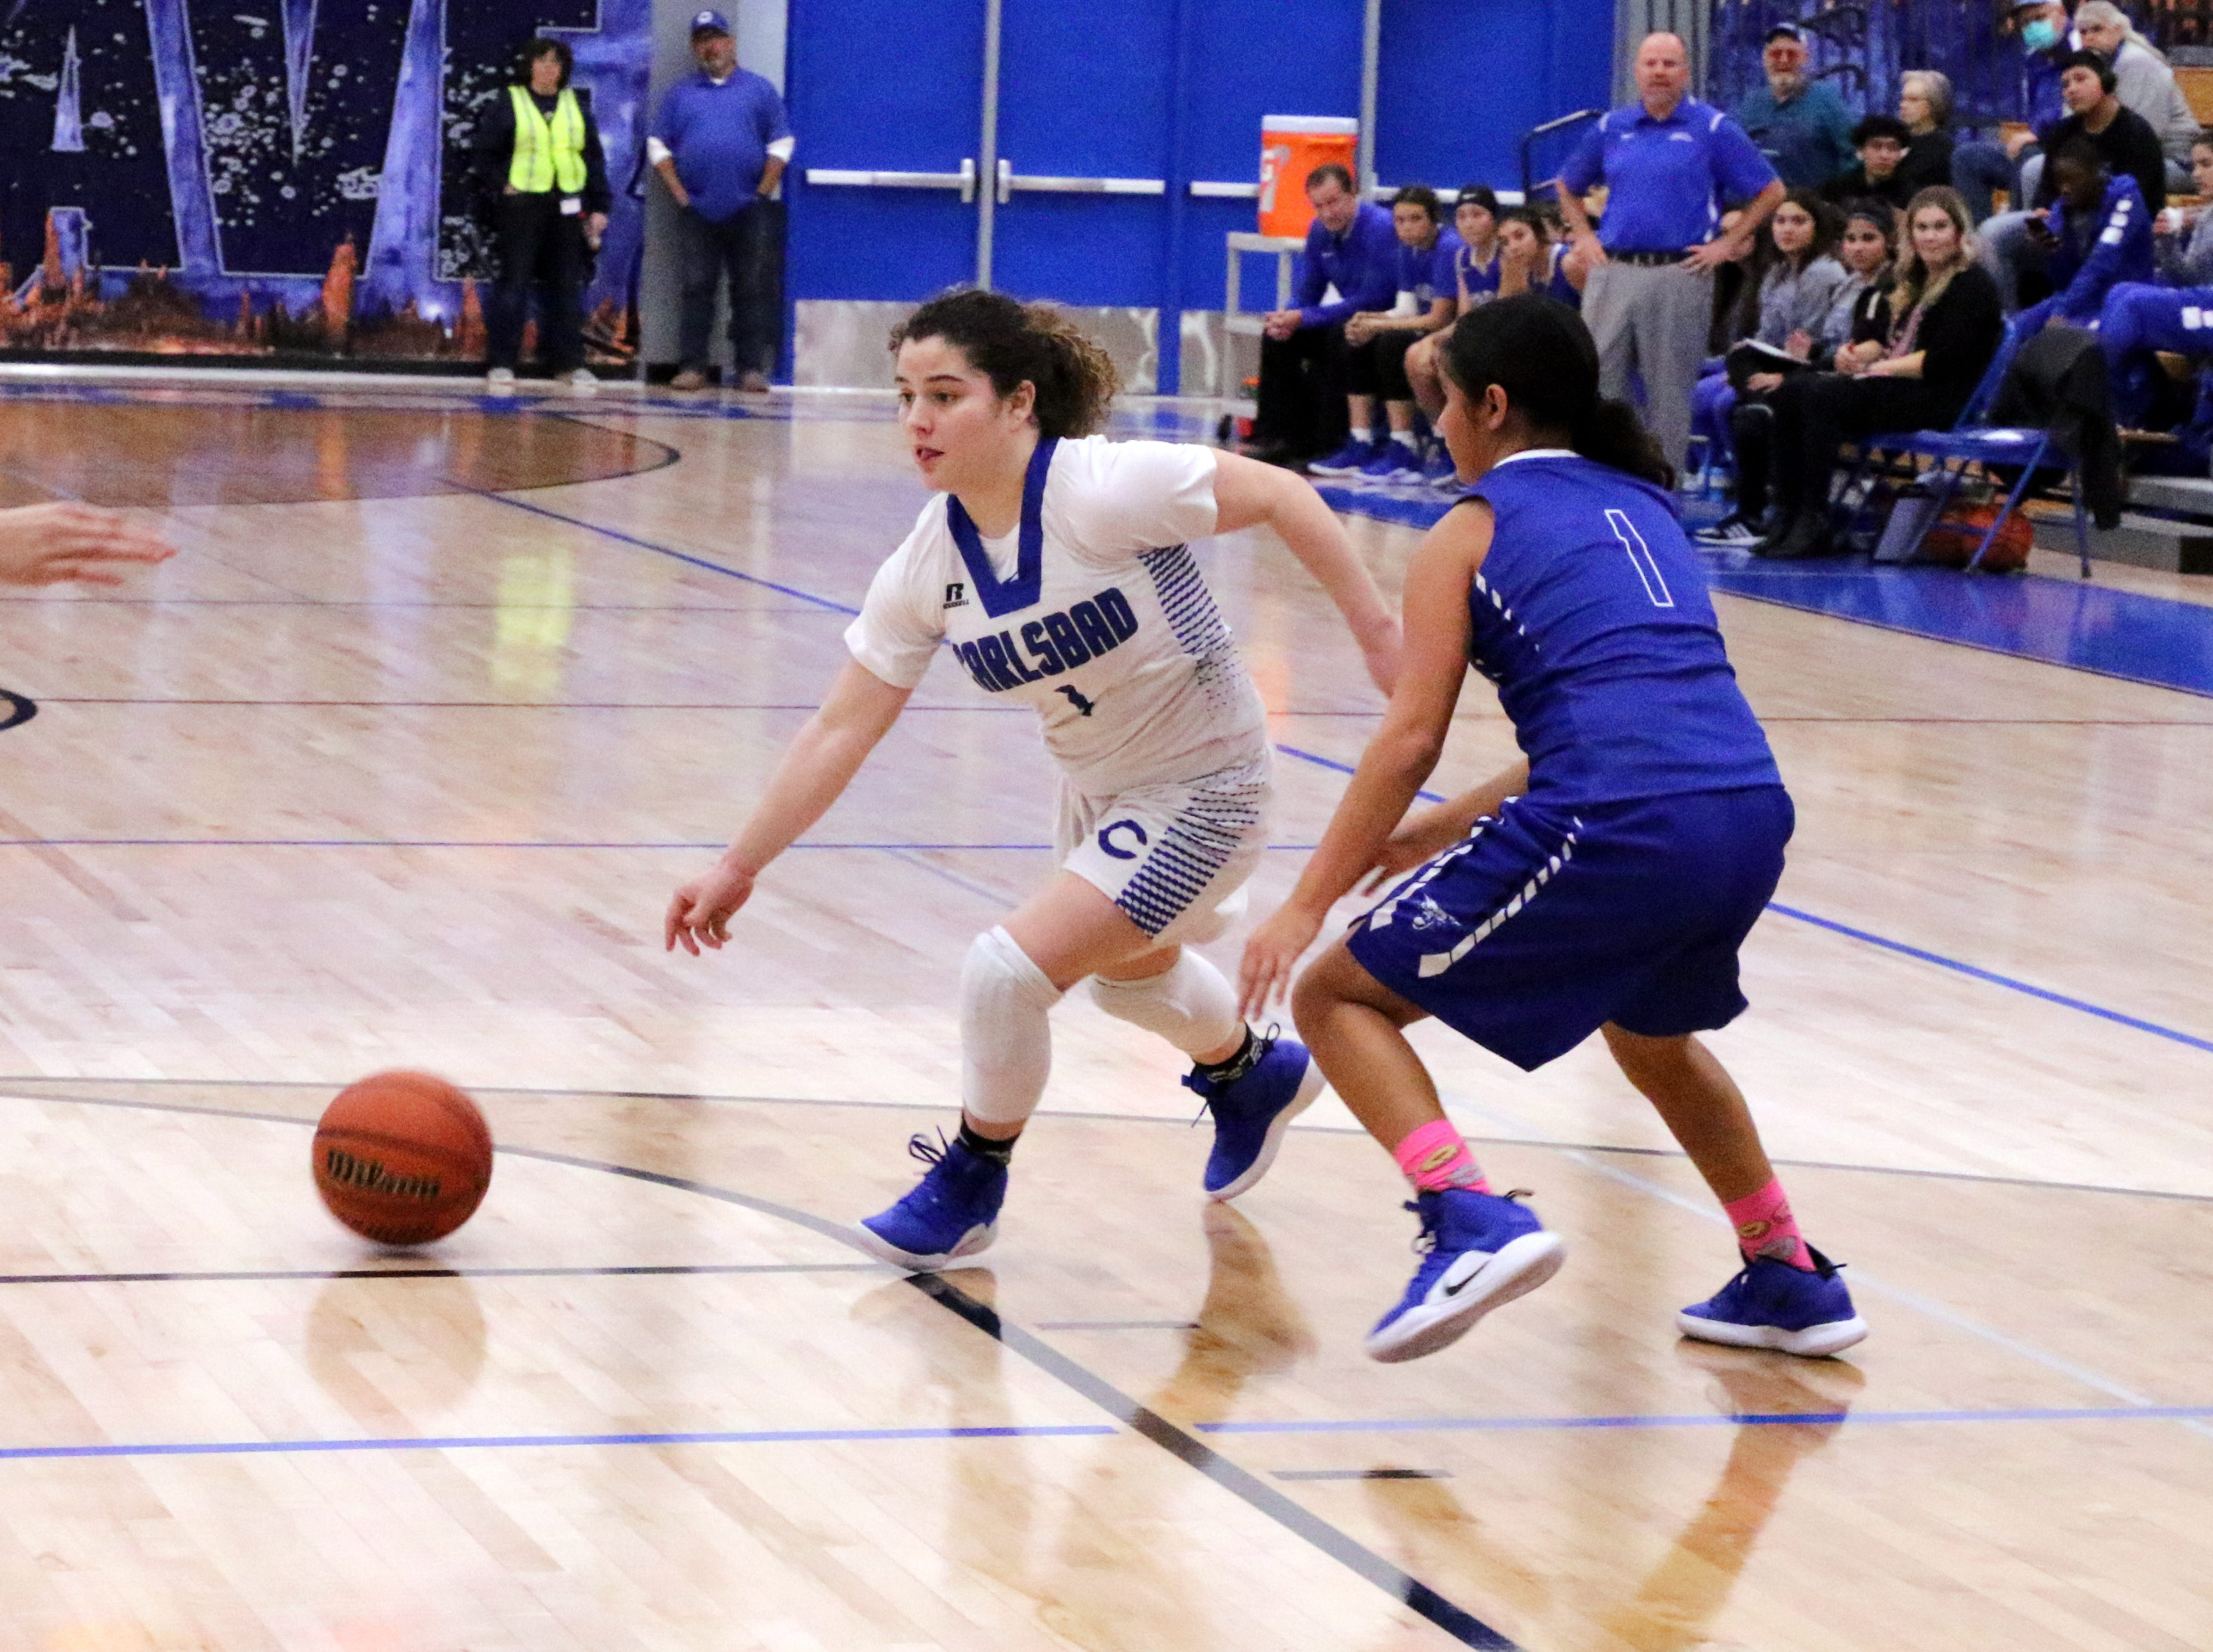 Jerri Lynn McDonald drives the lane in the fourth quarter during Tuesday's game against Lovington.